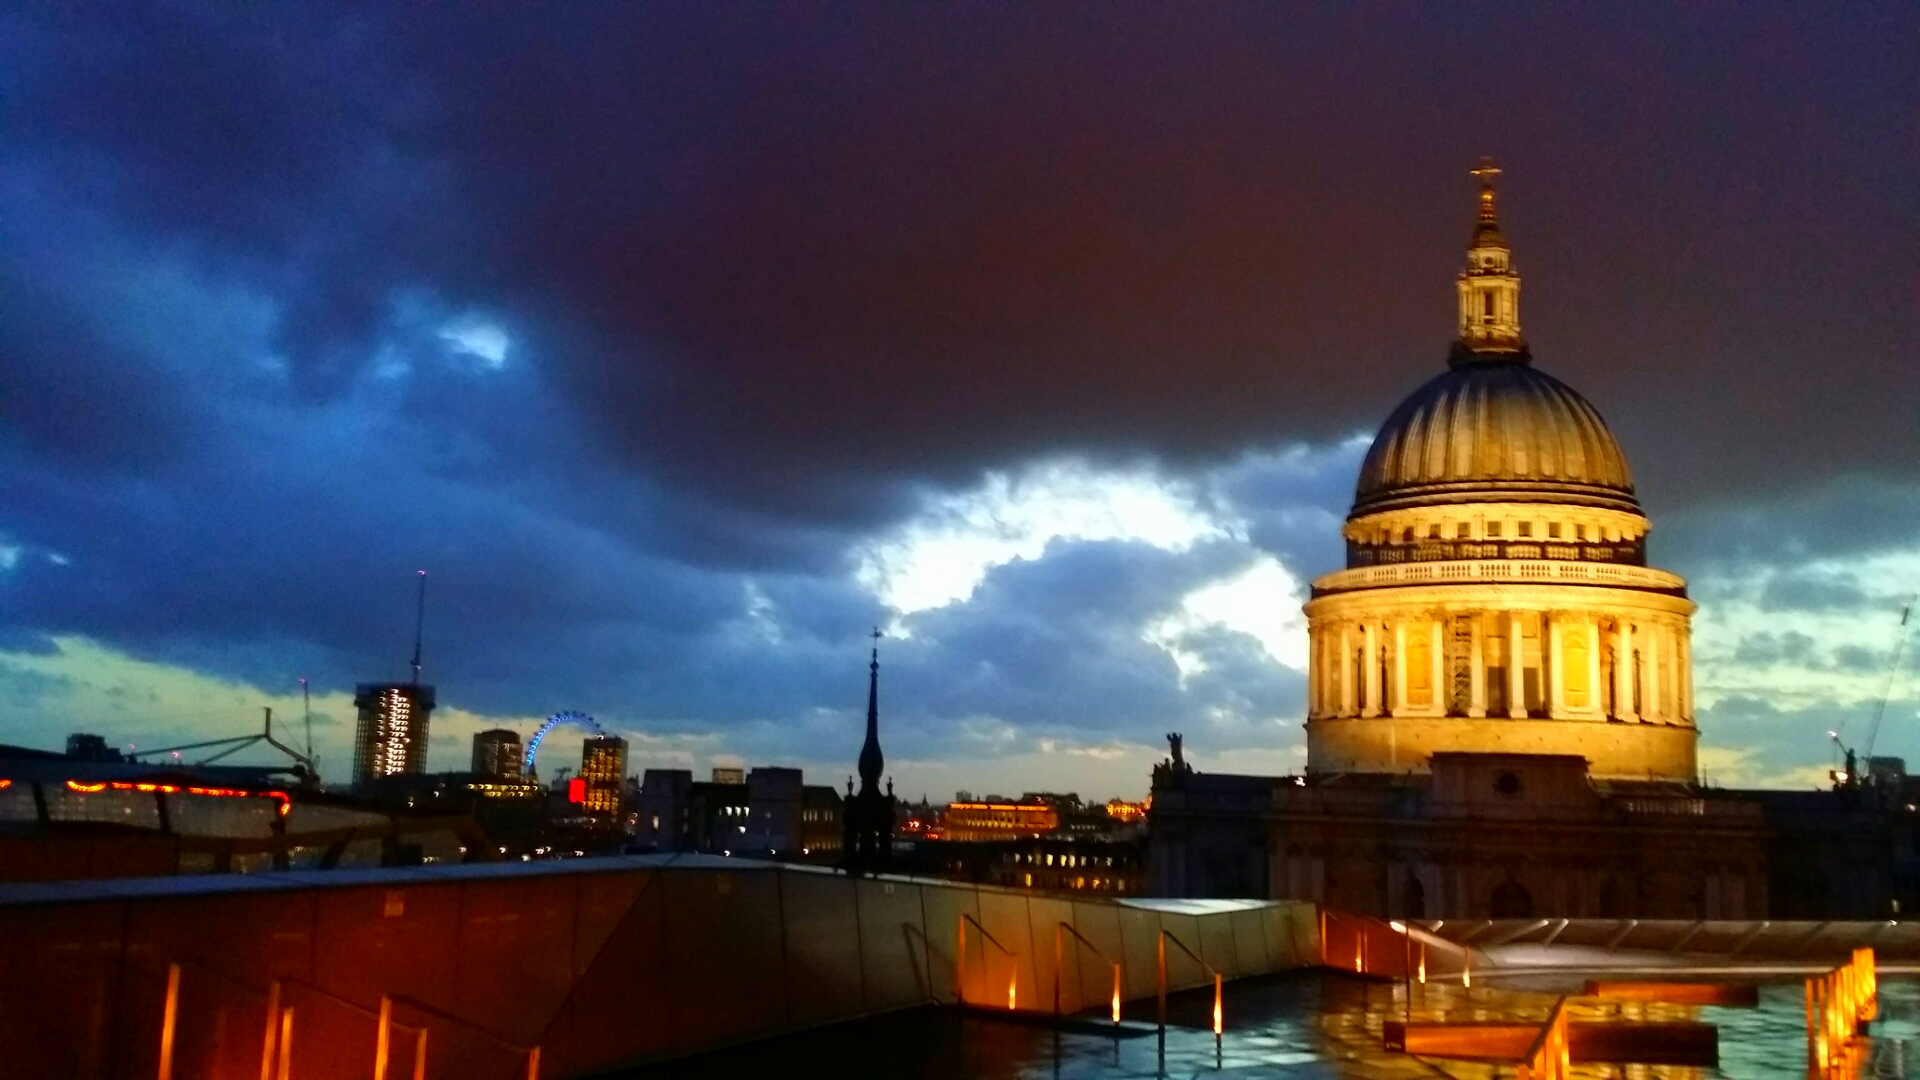 St Paul's on a stormy summer's night